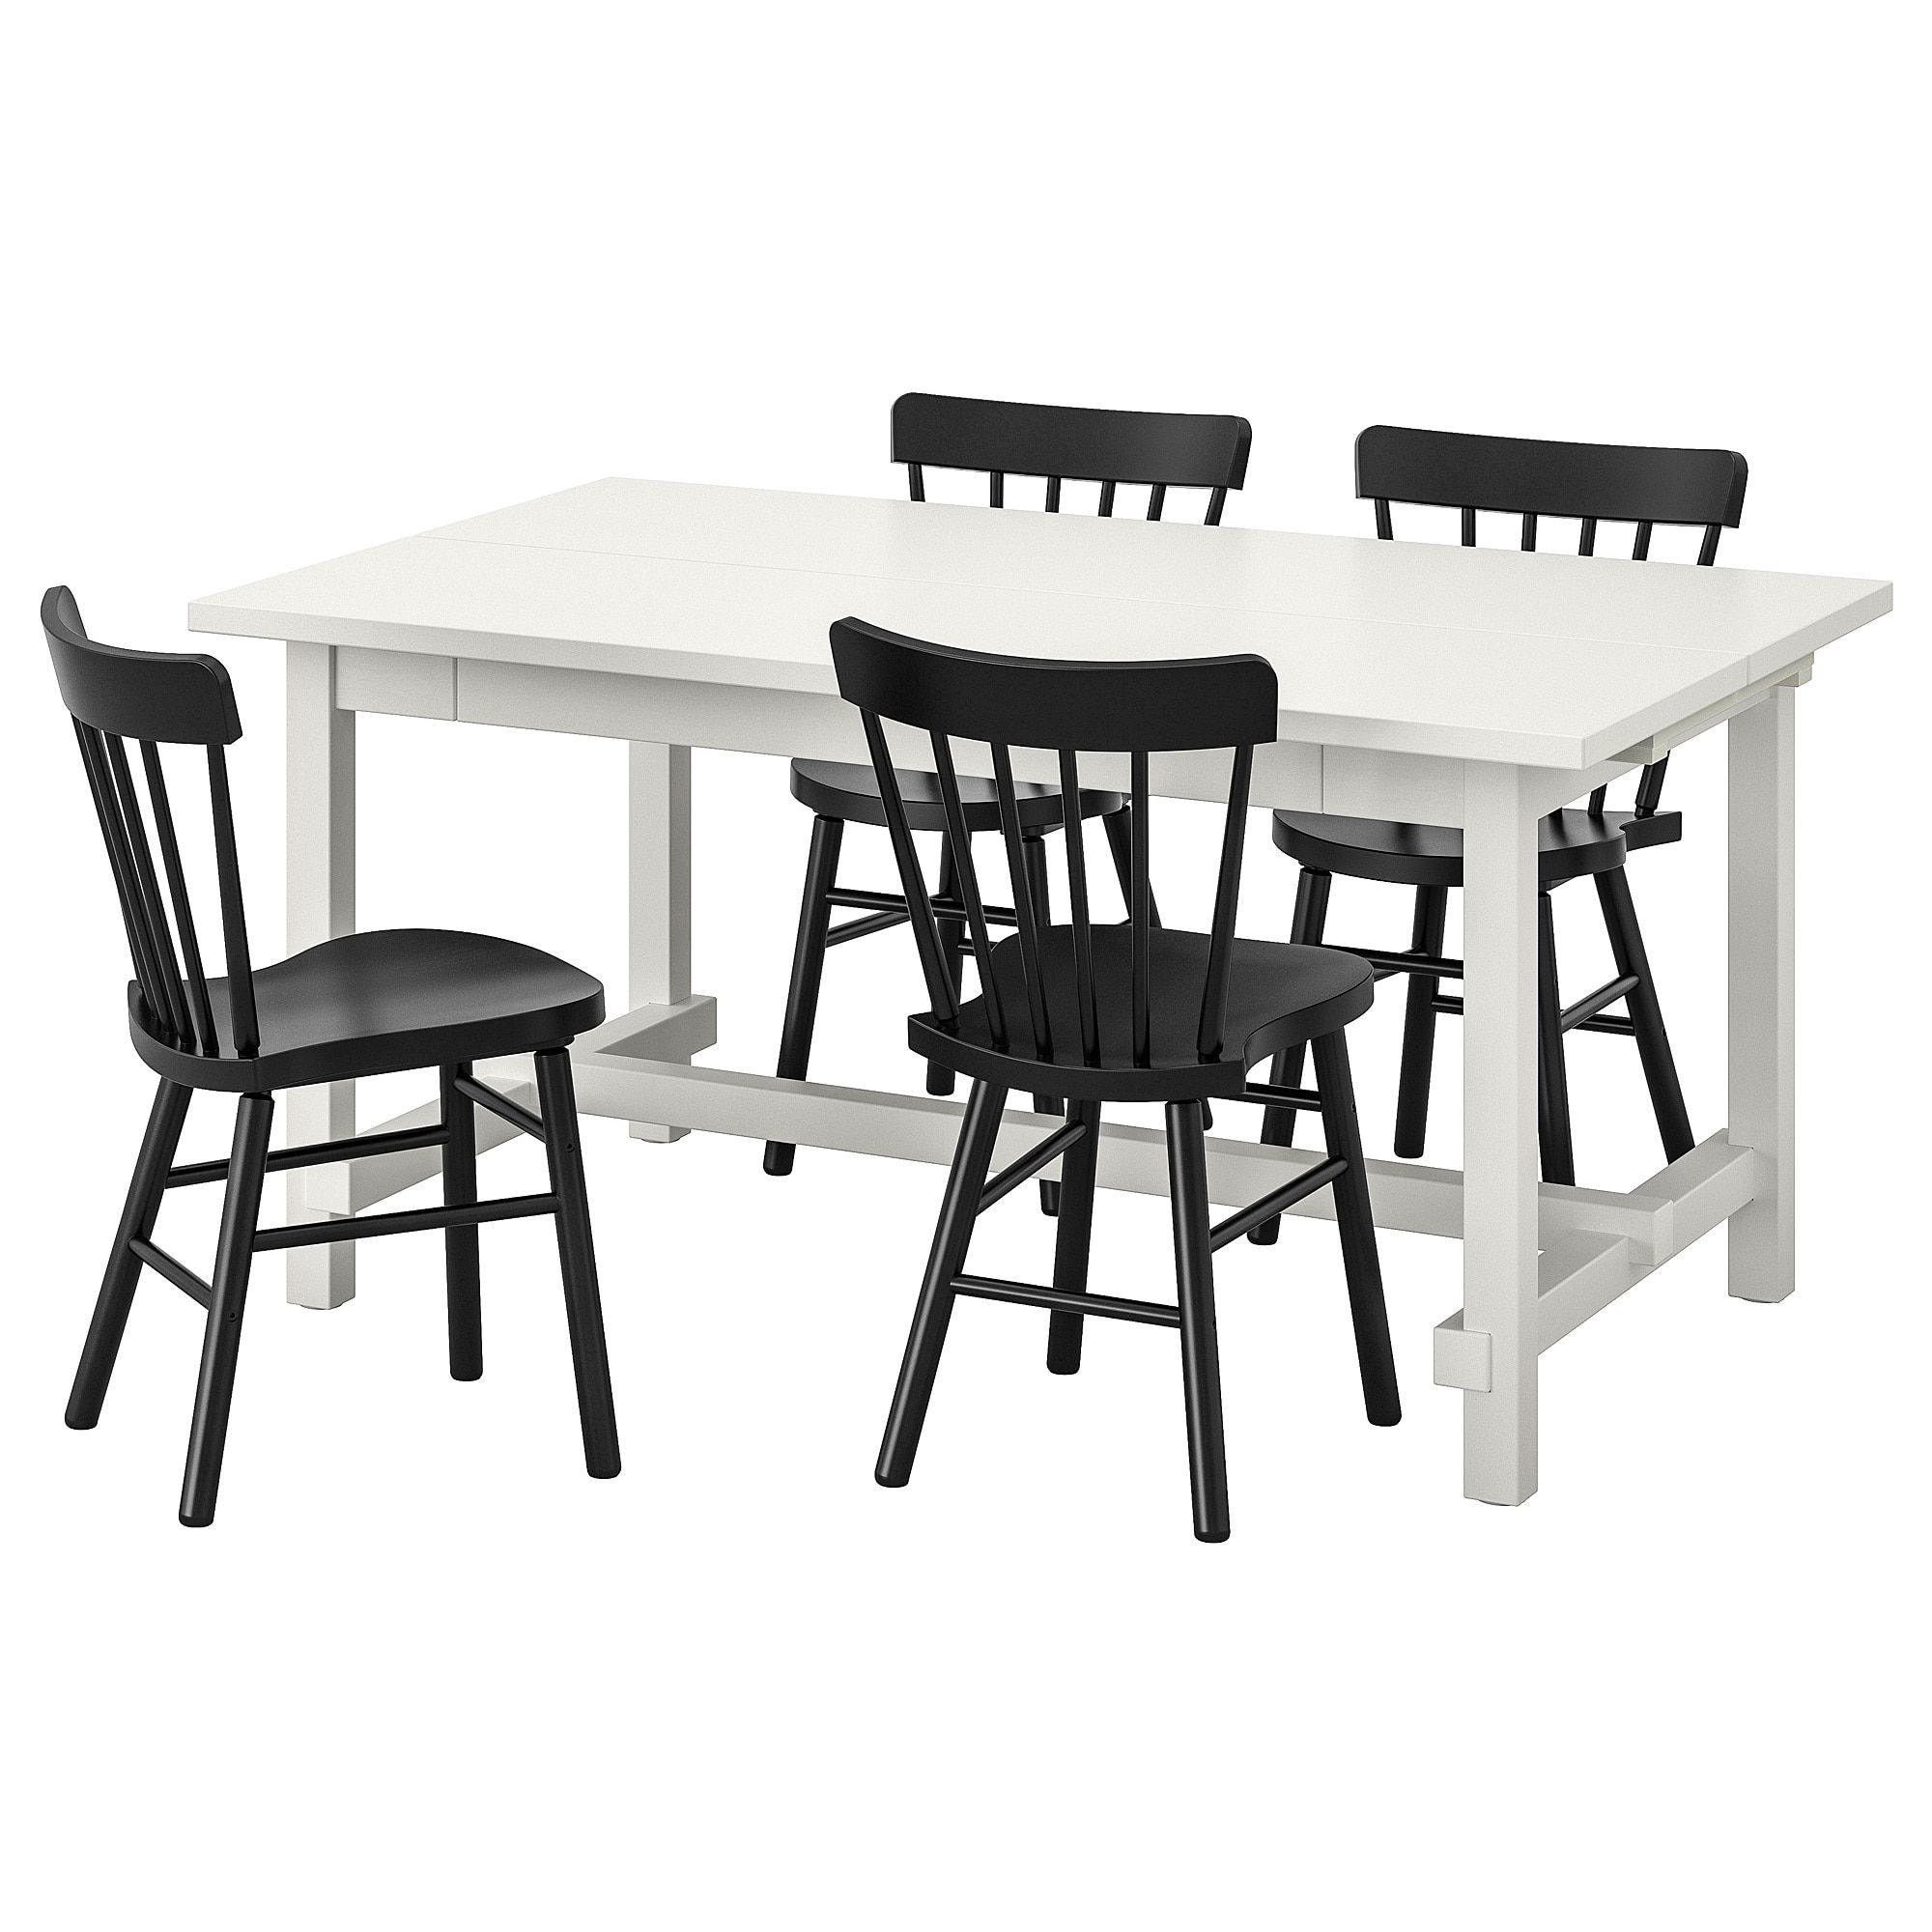 IKEA NORDVIKEN / NORRARYD White, Black Table and 4 chairs